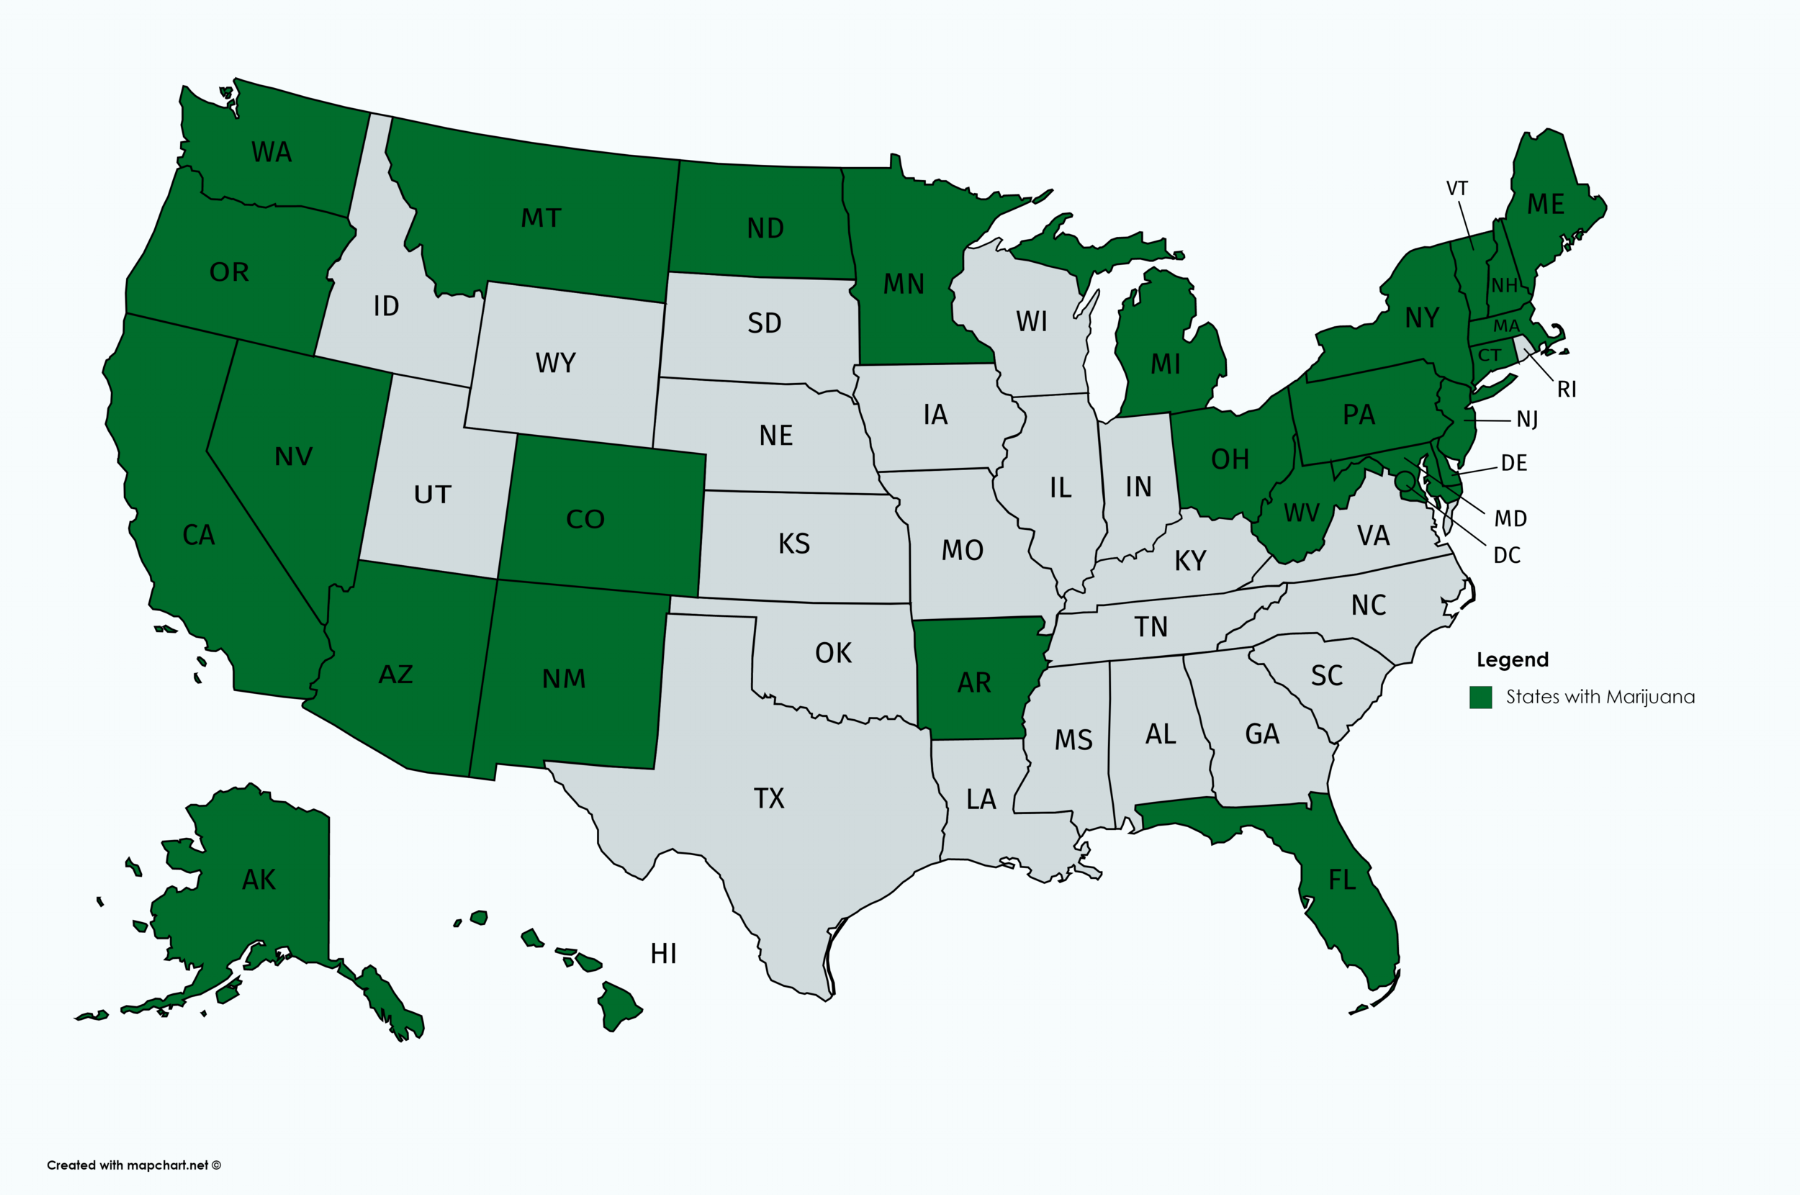 - There are 29 States with Recreational Marijuana and Medical Marijuana laws passed, as of October, 2017.2016 saw California, Nevada, Massachusetts, and Maine legalize recreational marijuana, while North Dakota, Arkansas, and Florida legalized medical marijuana.